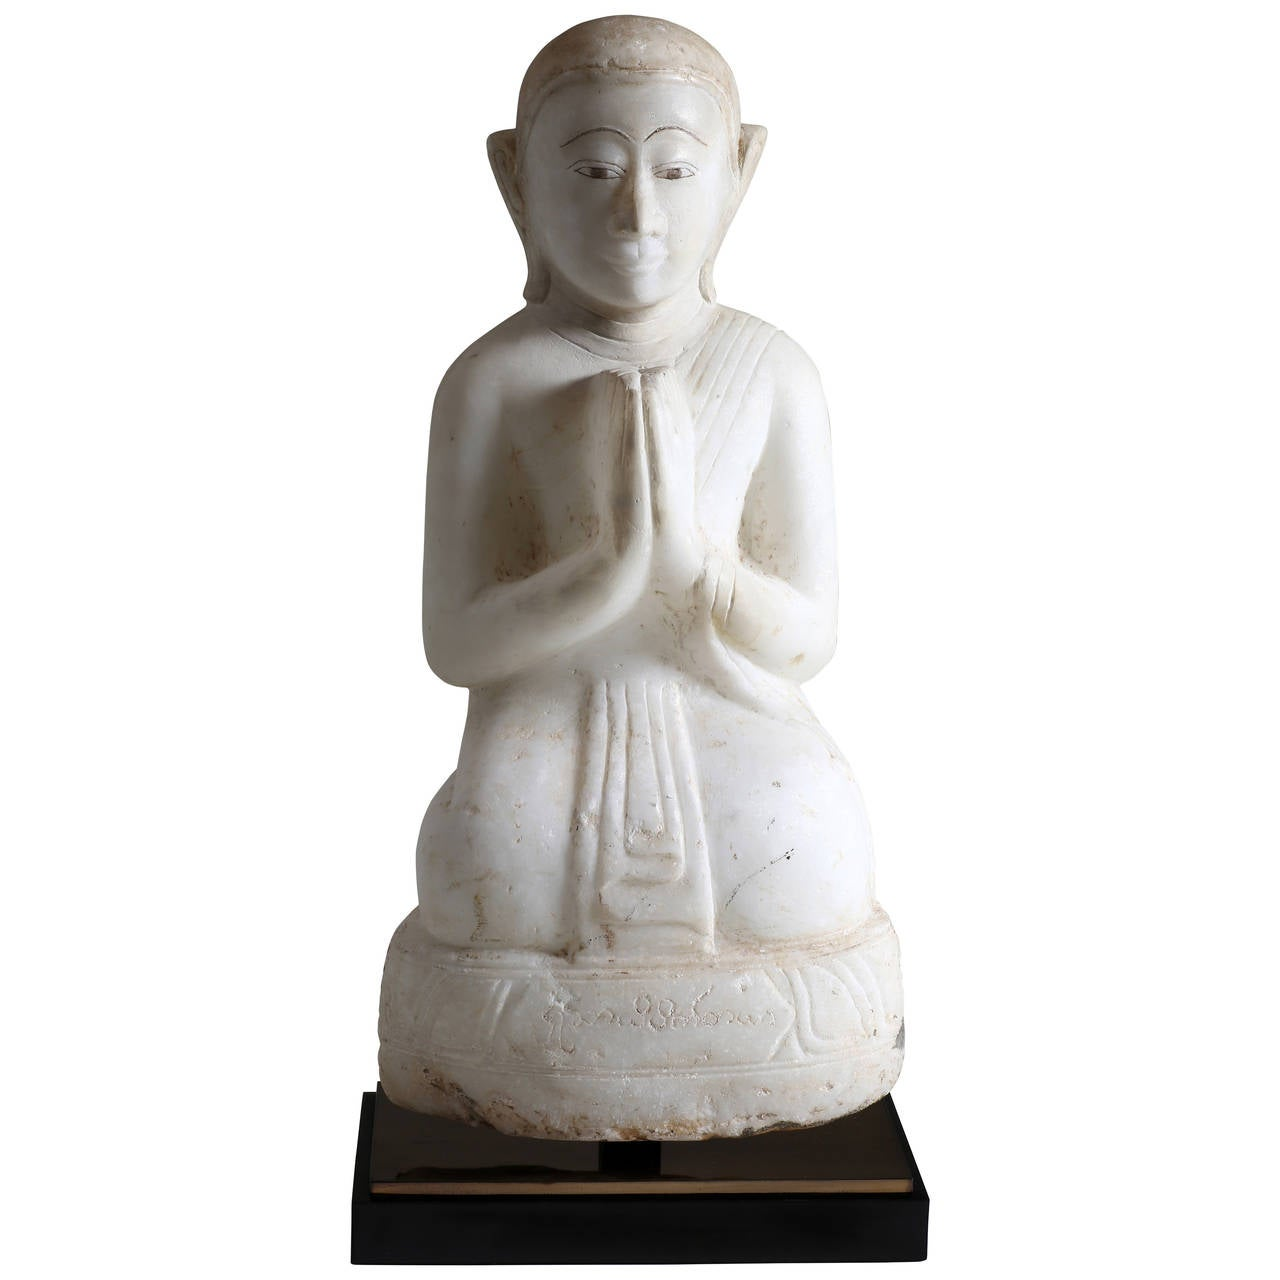 Antique Burmese Alabaster Kneeling Monk Sculpture, Mandalay Style